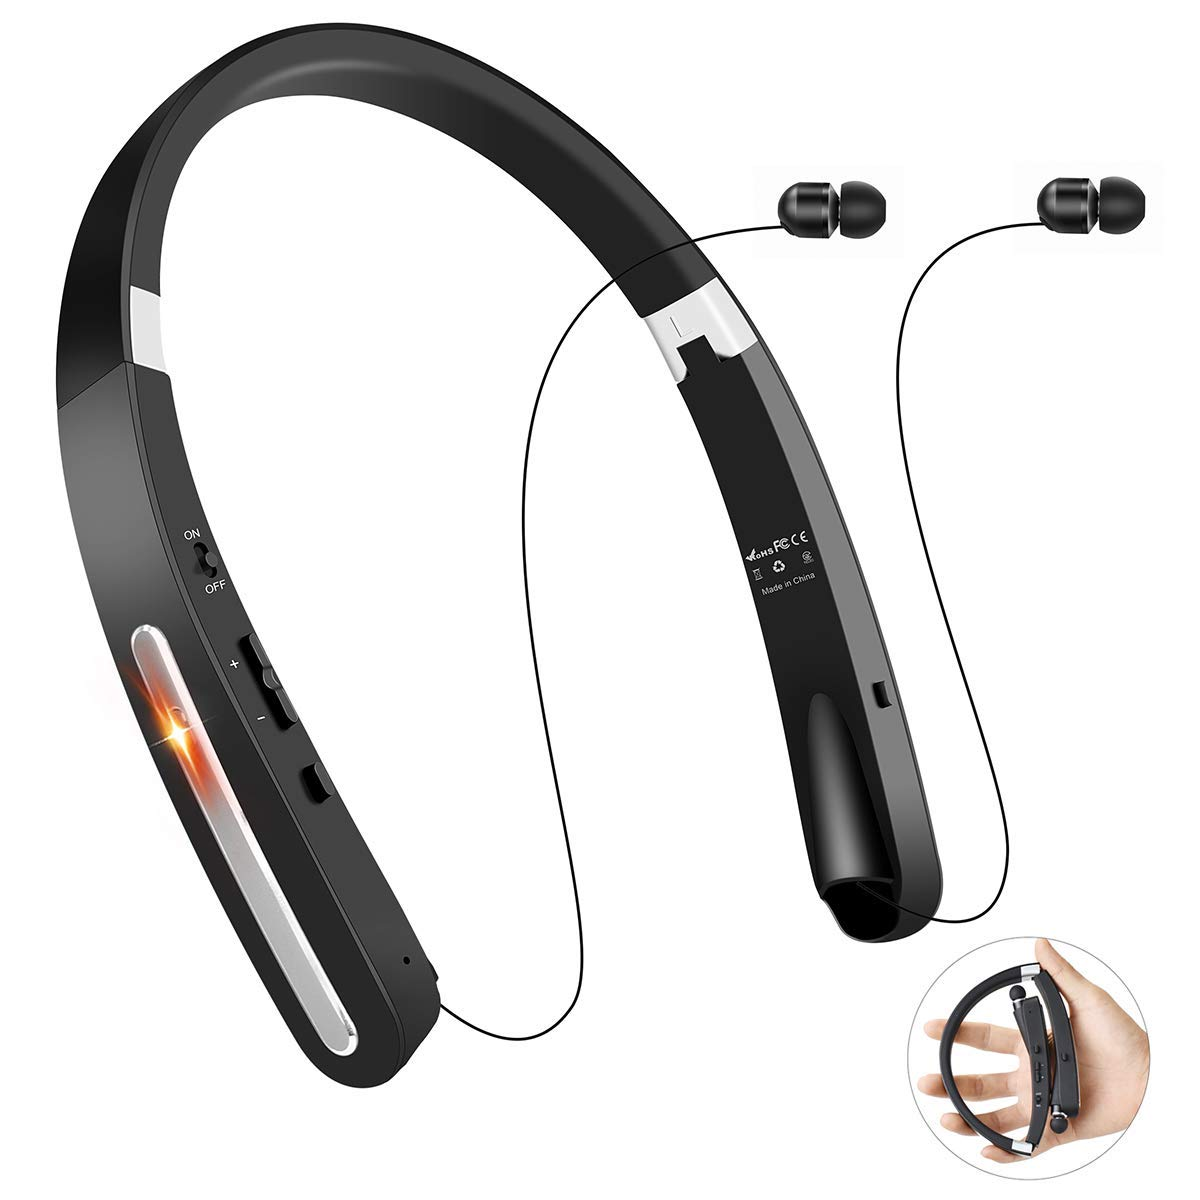 b17170c1621 Best Cheap Bluetooth Headphones 2019 (Under $30 / $50) - BudgetReport